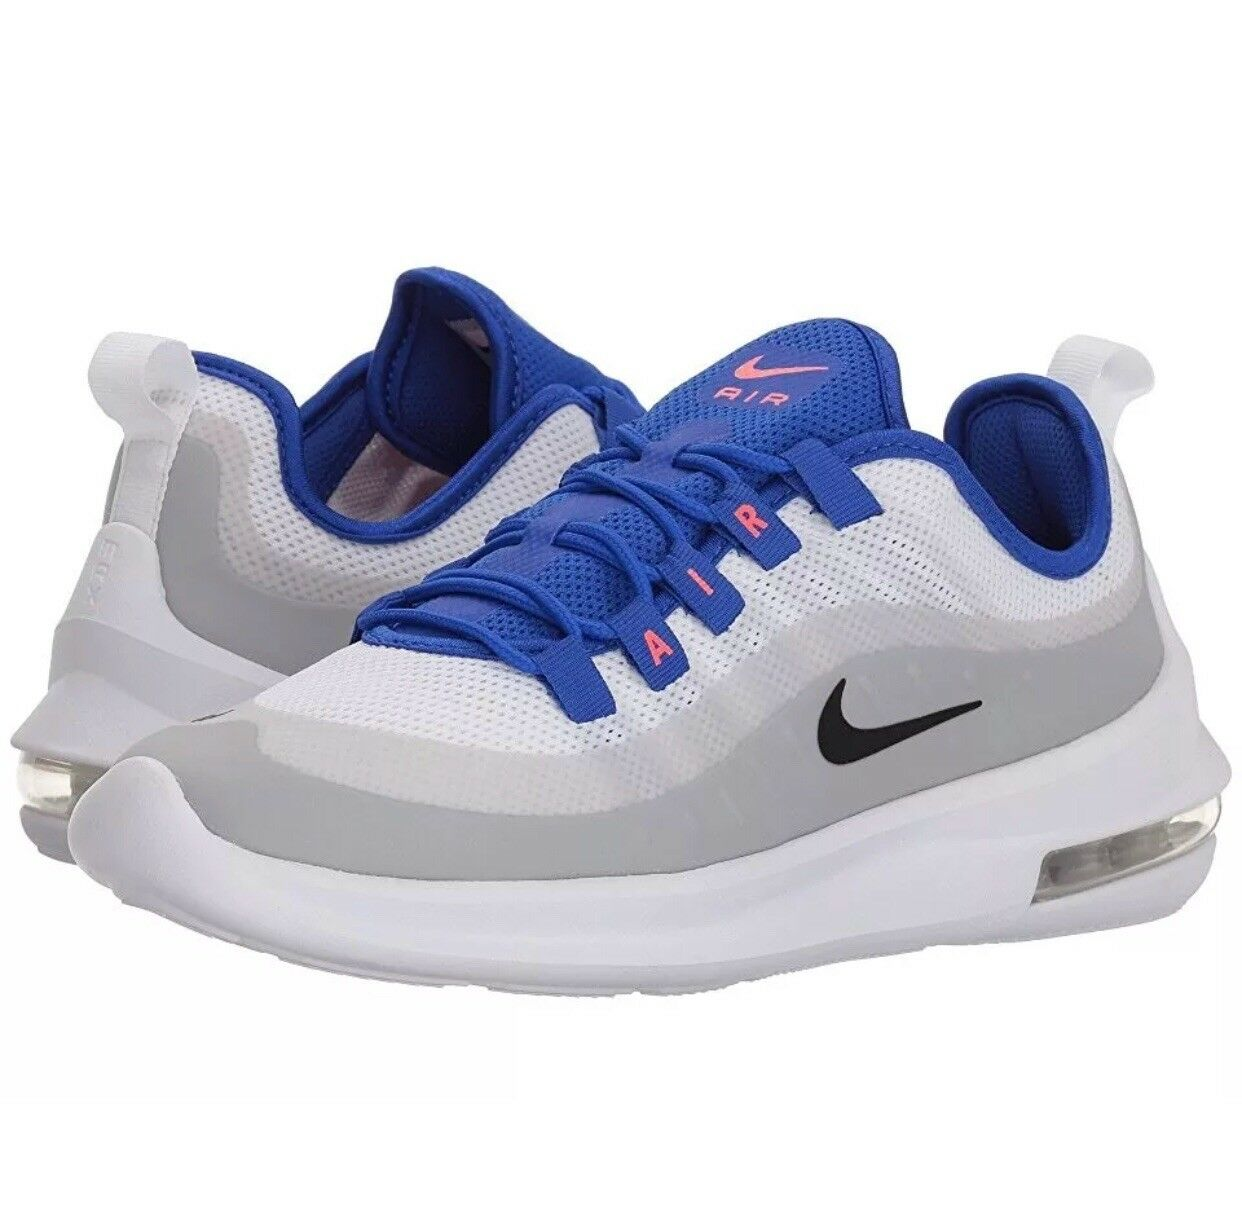 Womens Nike Air Max Axis Size 7 Brand New In Box